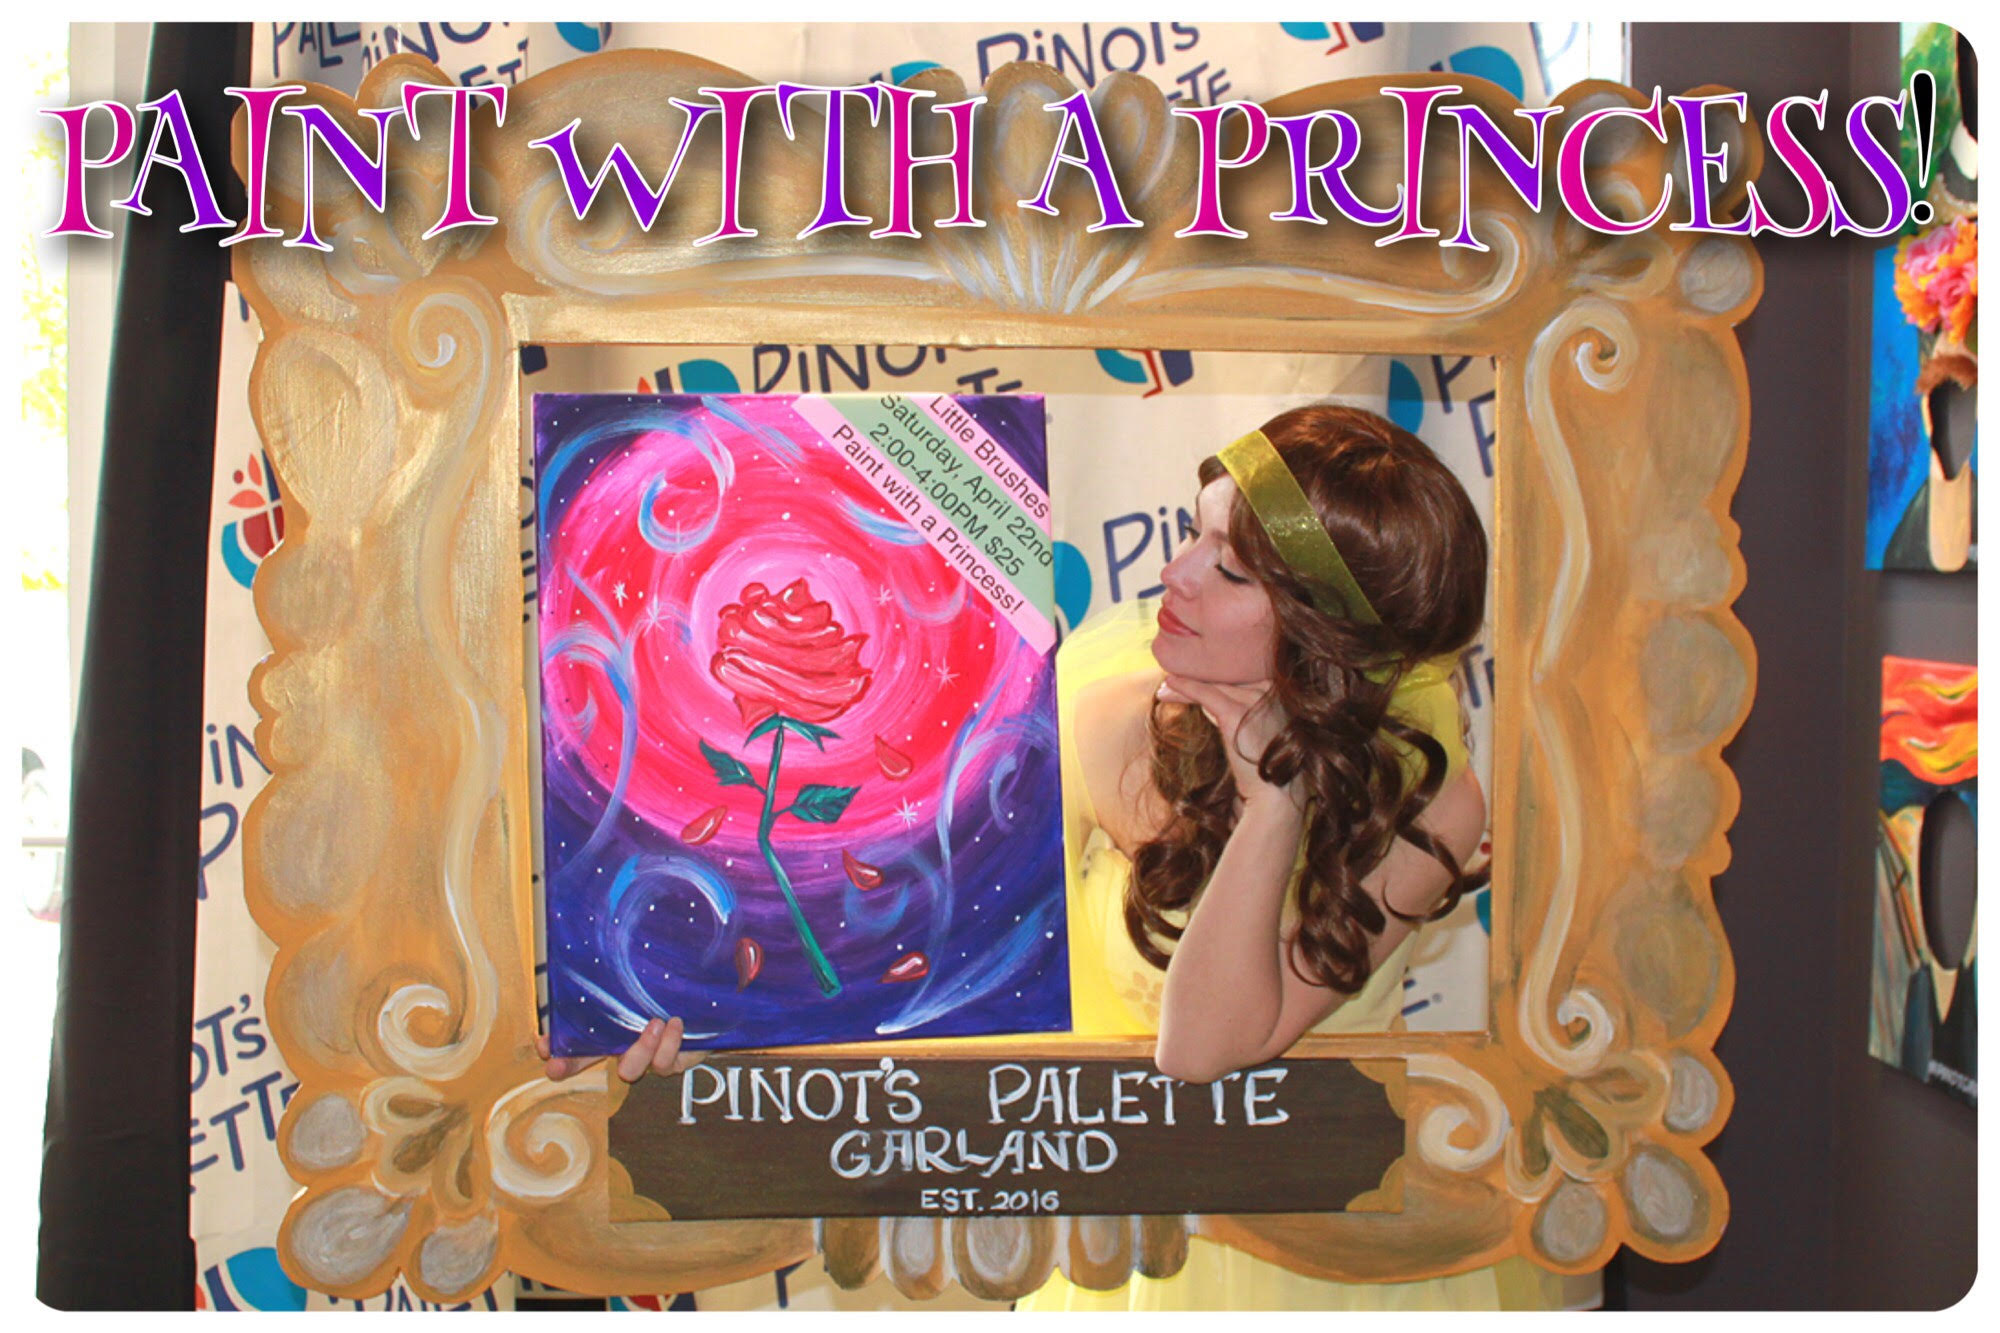 paint with a princess at garland's favorite paint and sip studio